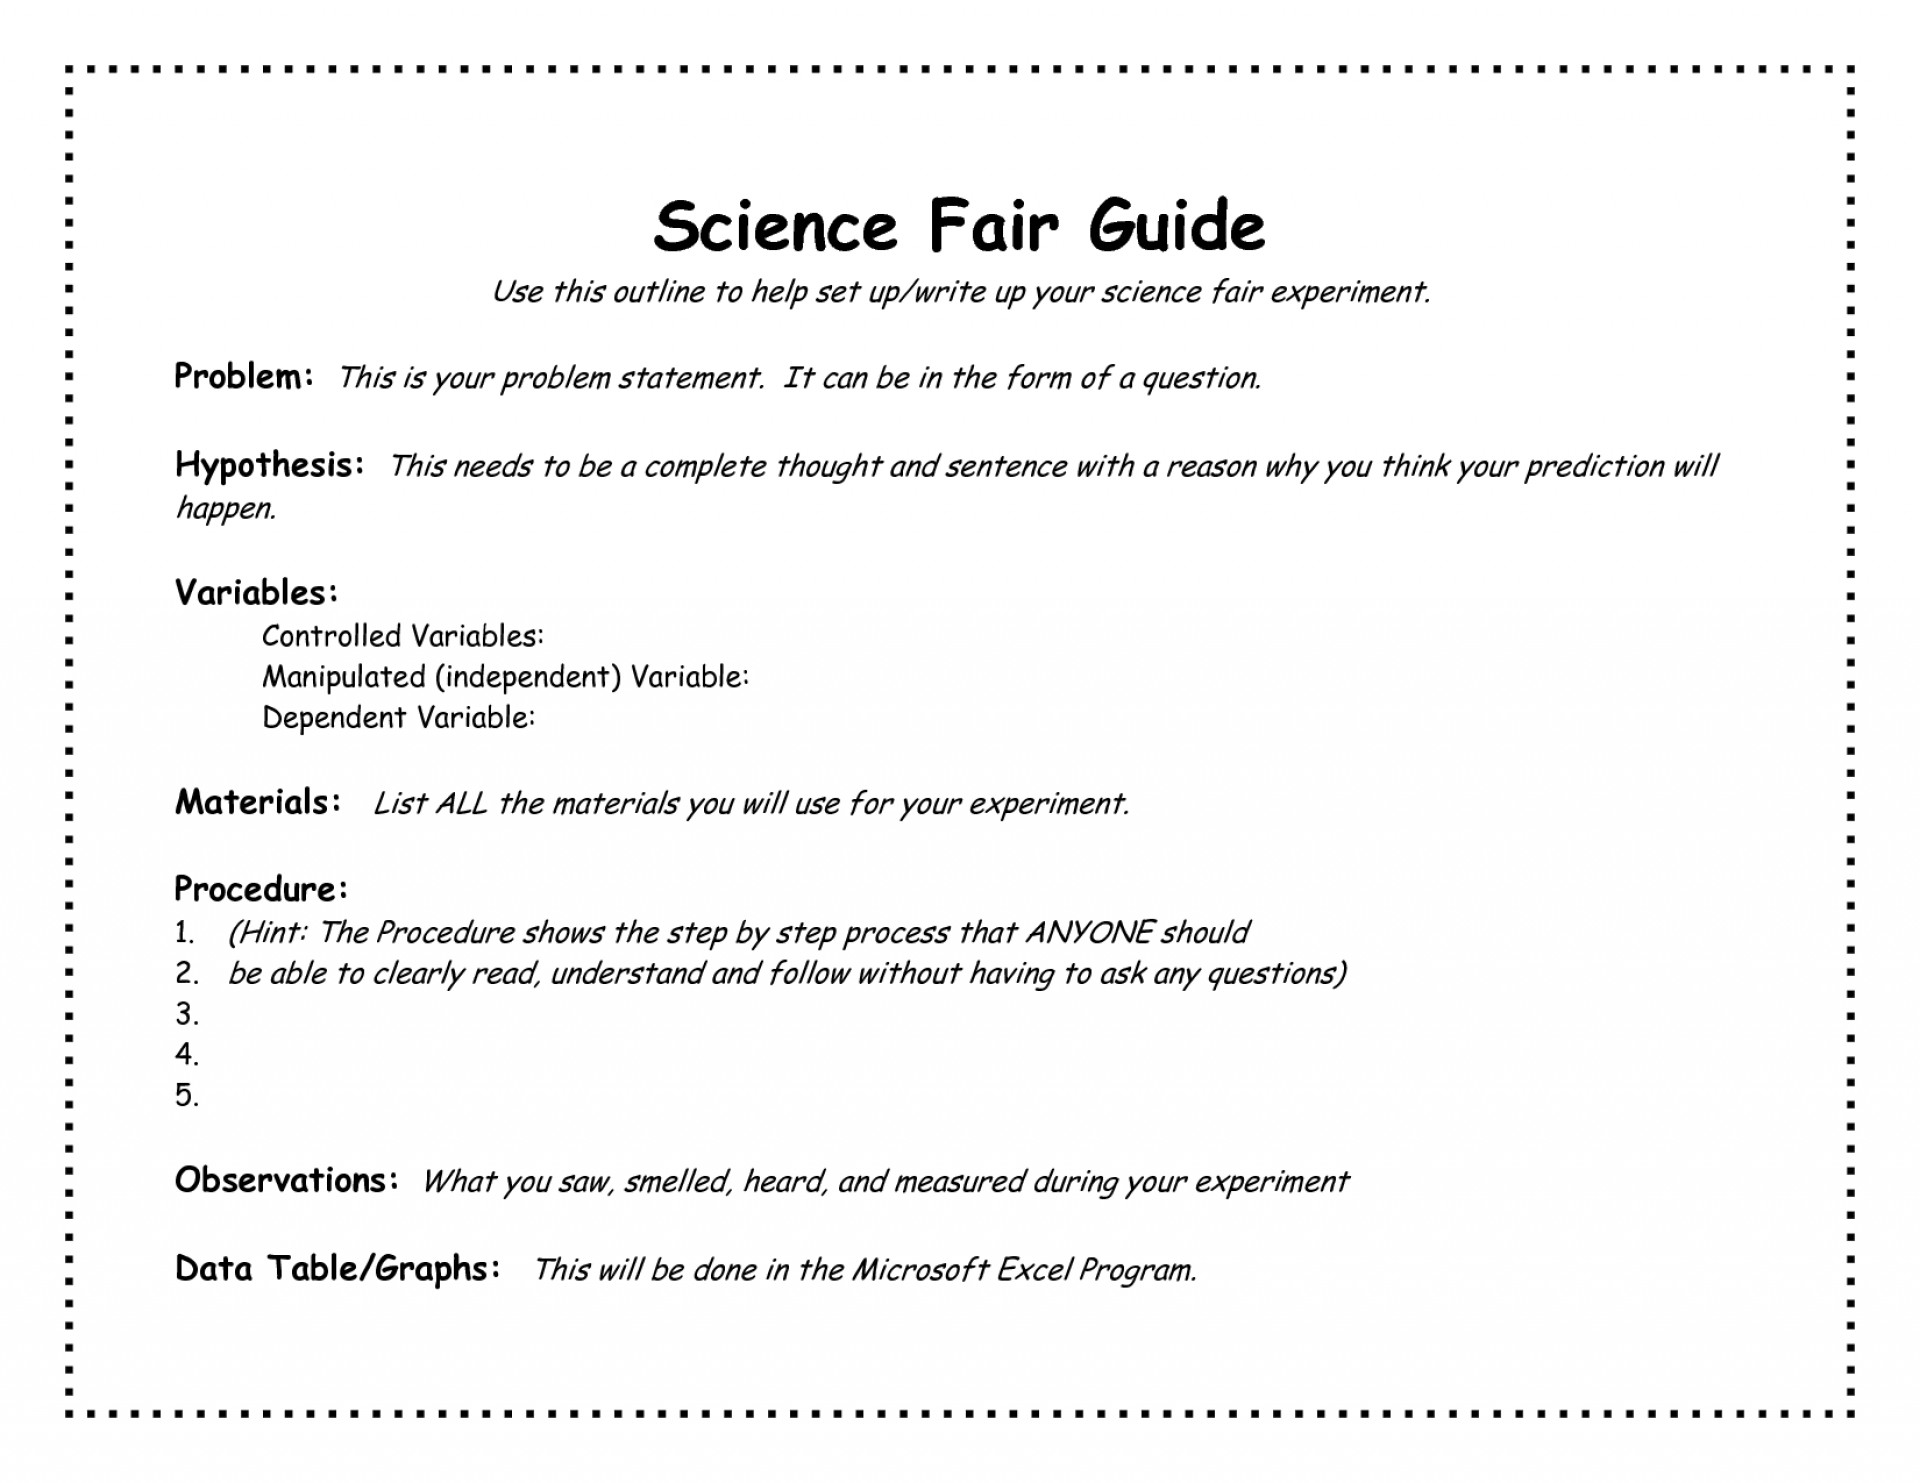 004 Example Of Science Fair Research Paper Outline Amazing A 1920